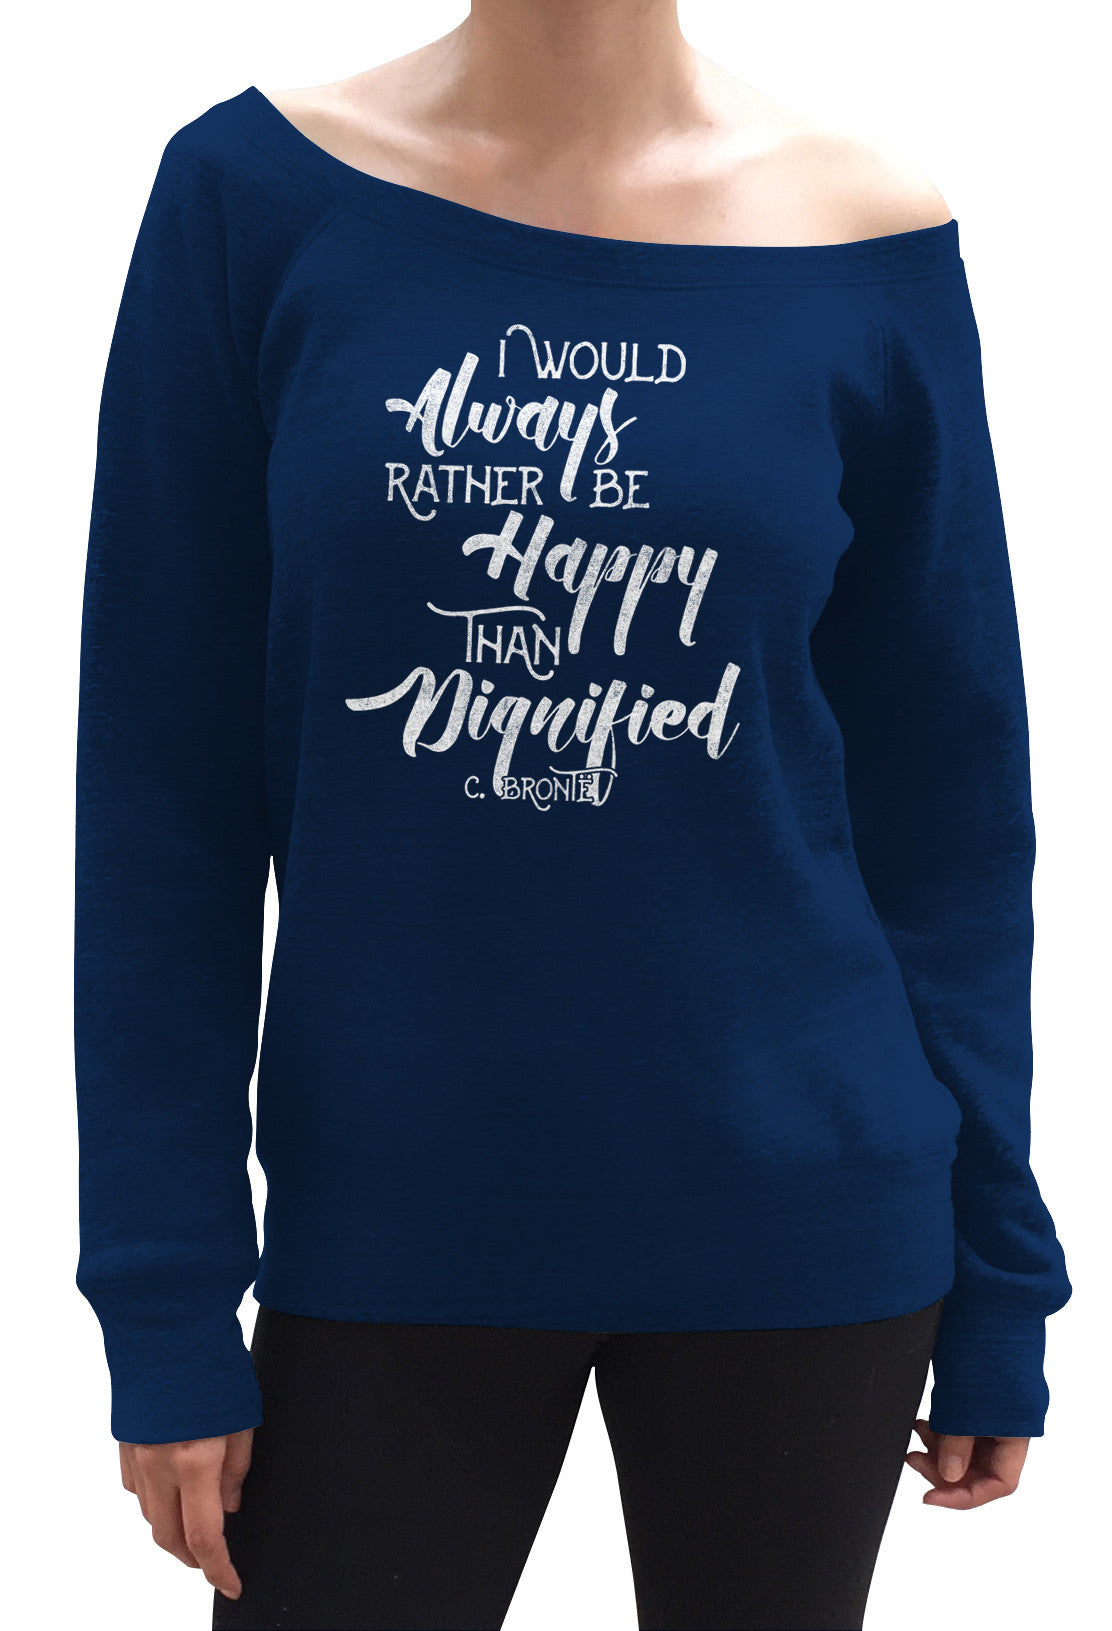 Women's I Would Always Rather Be Happy Than Dignified Scoop Neck Fleece - Juniors Fit